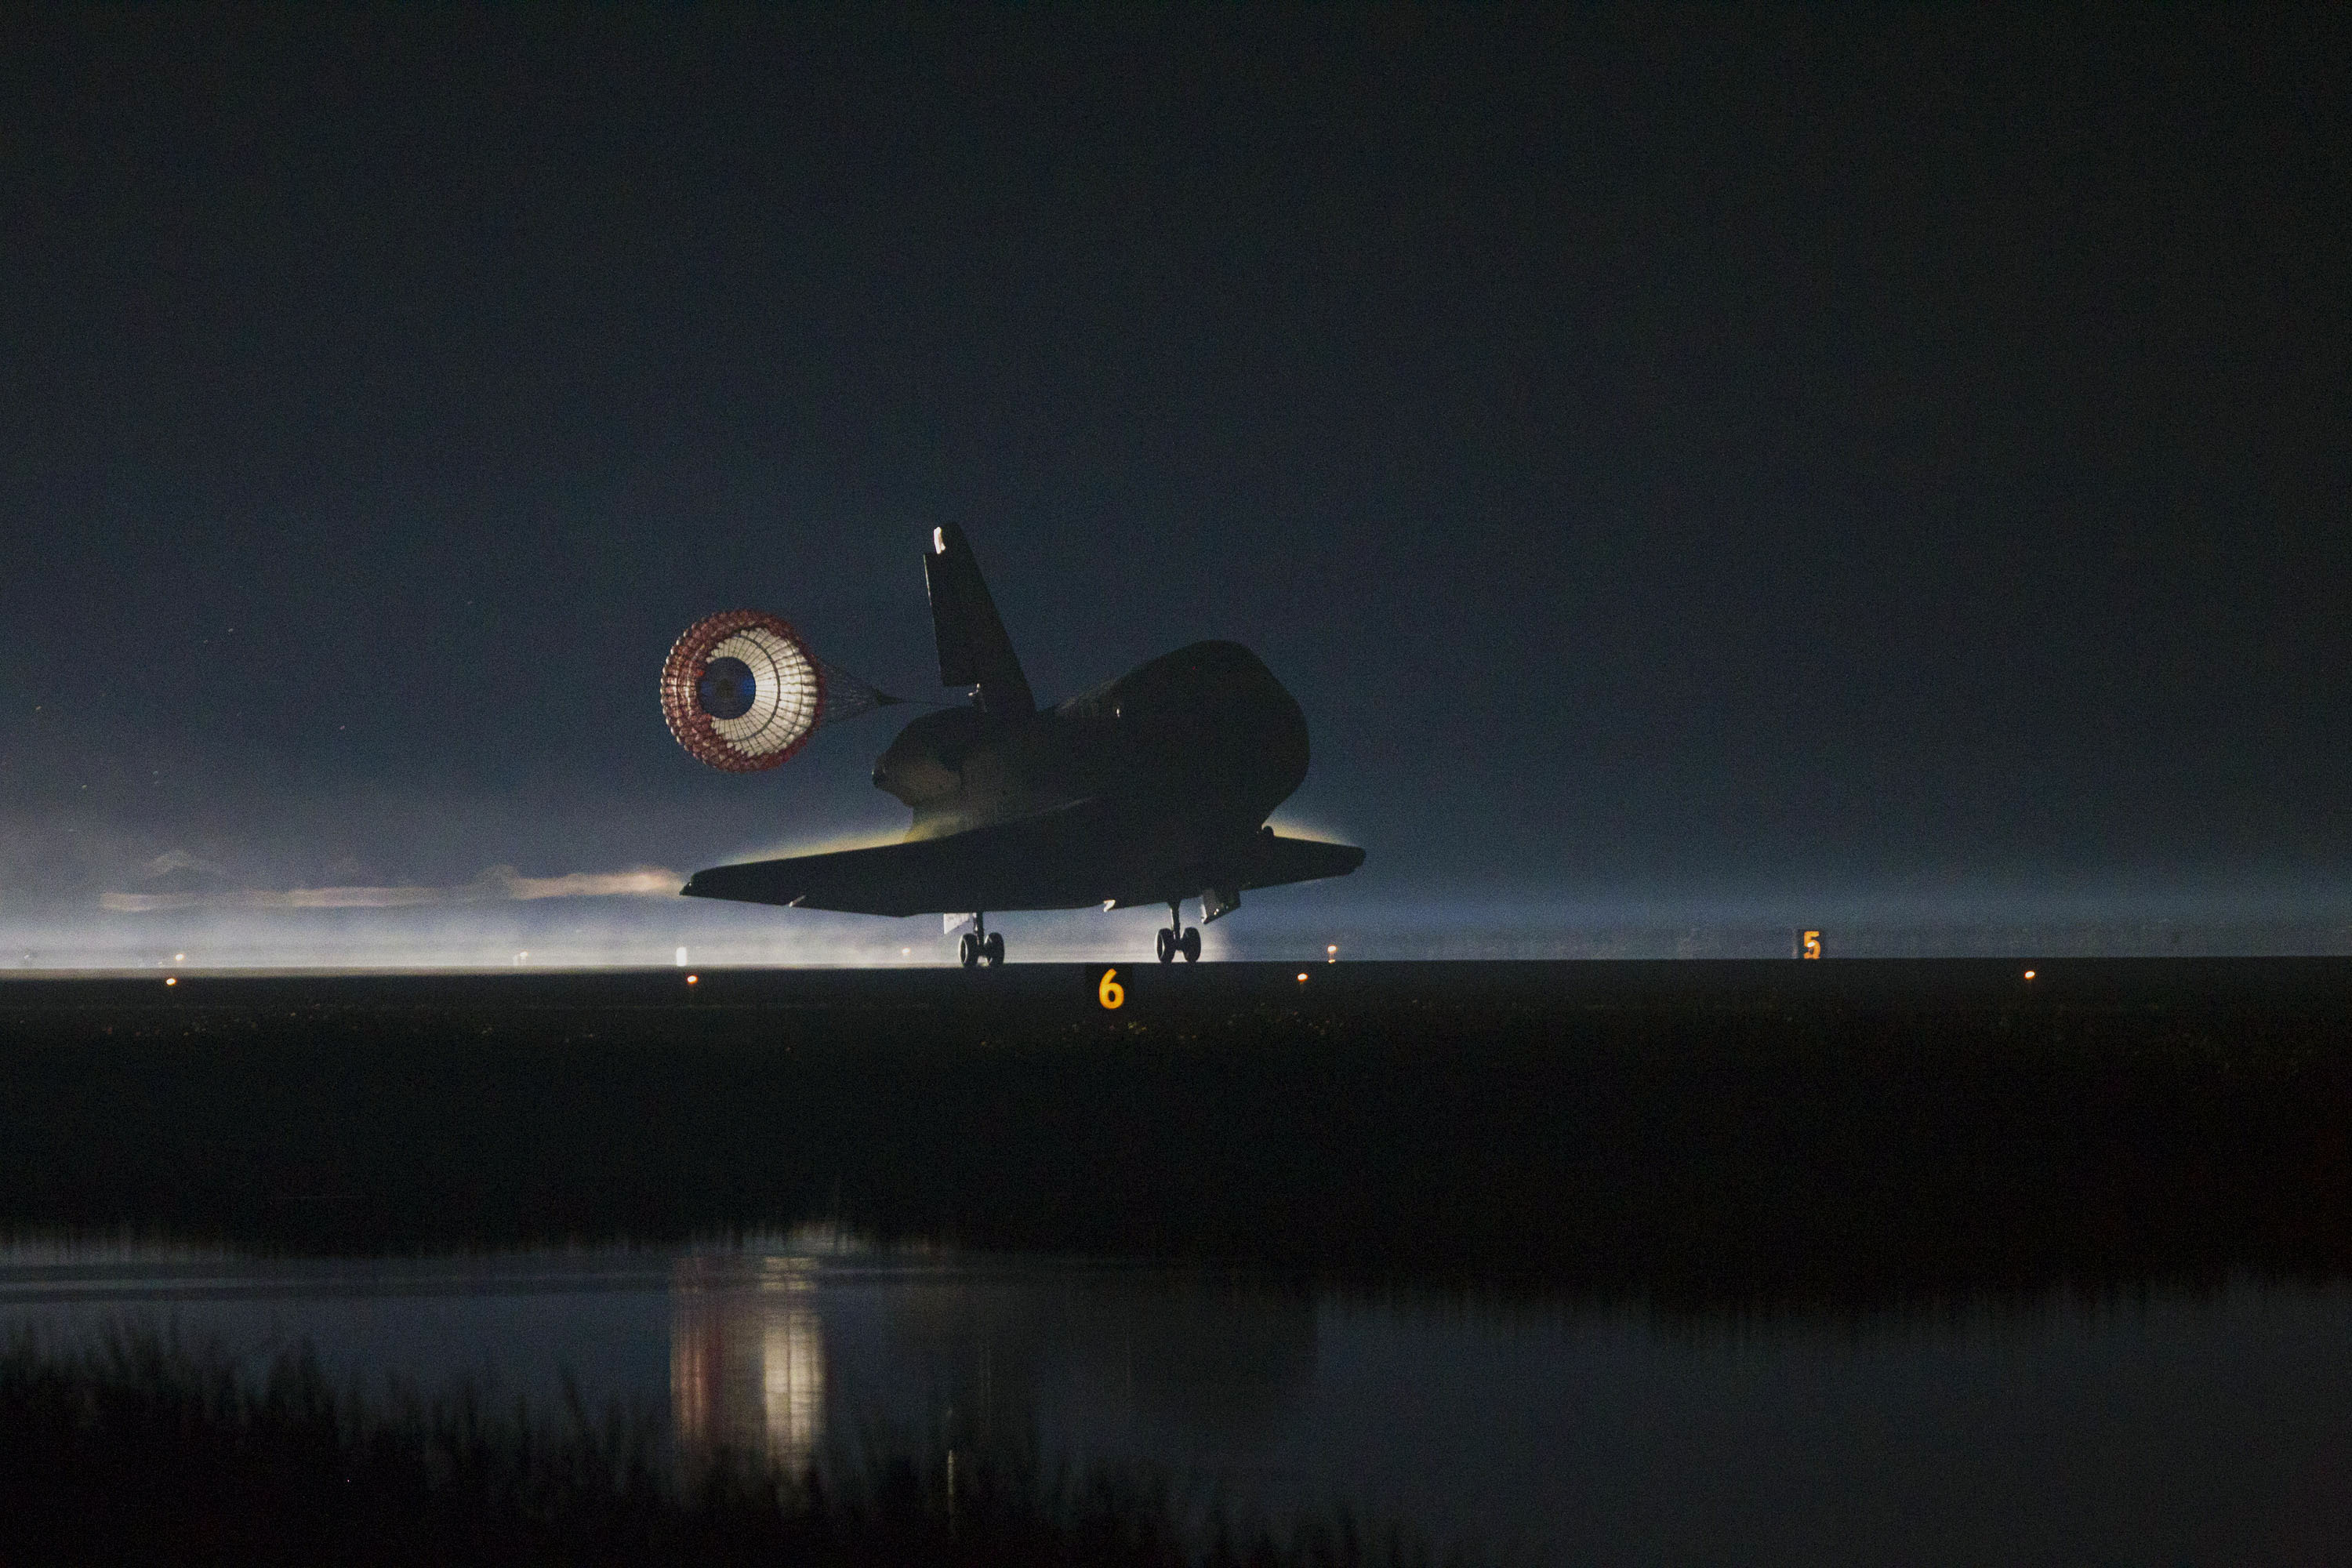 space shuttle landing from inside - photo #21